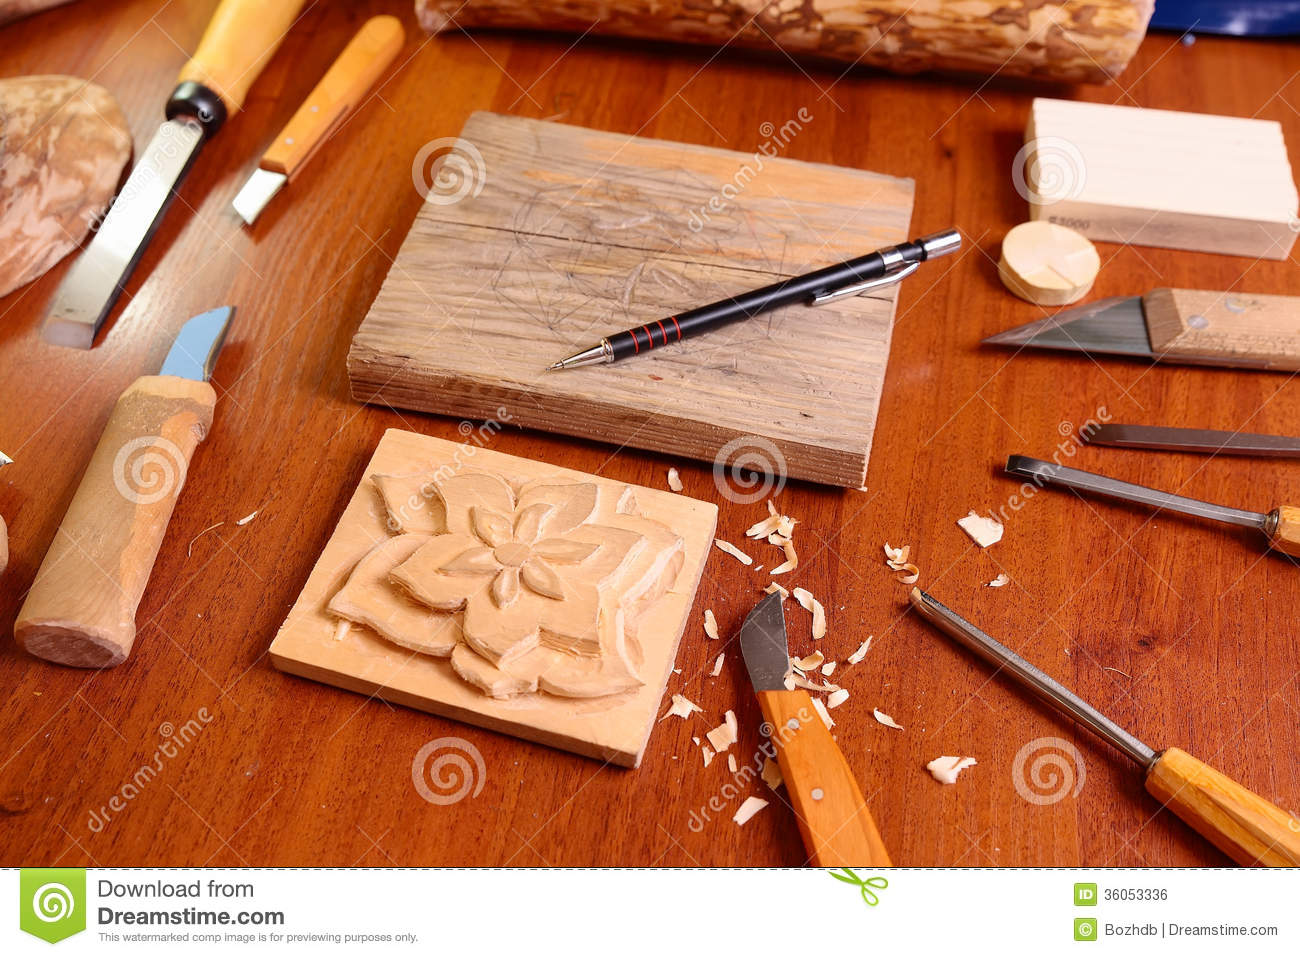 Wood Carving Tools The wood carving tools with